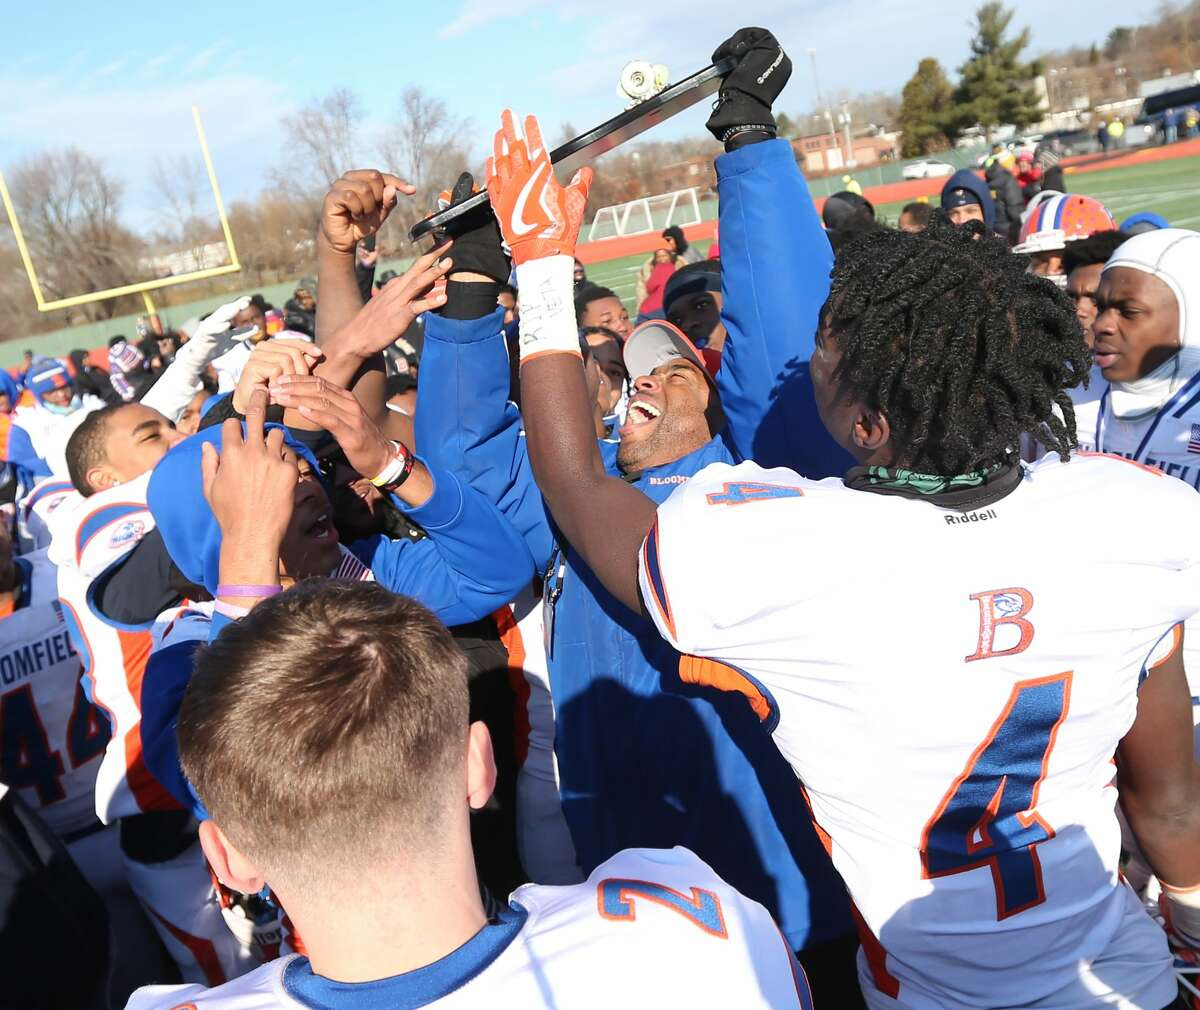 Bloomfield High School football head coach Tylon Outlaw raises the championship plaque to celebrate the team's win in the Class S Championship Game in New Britain over Haddam-Killingworth High School on Saturday, Dec. 8, 2018.